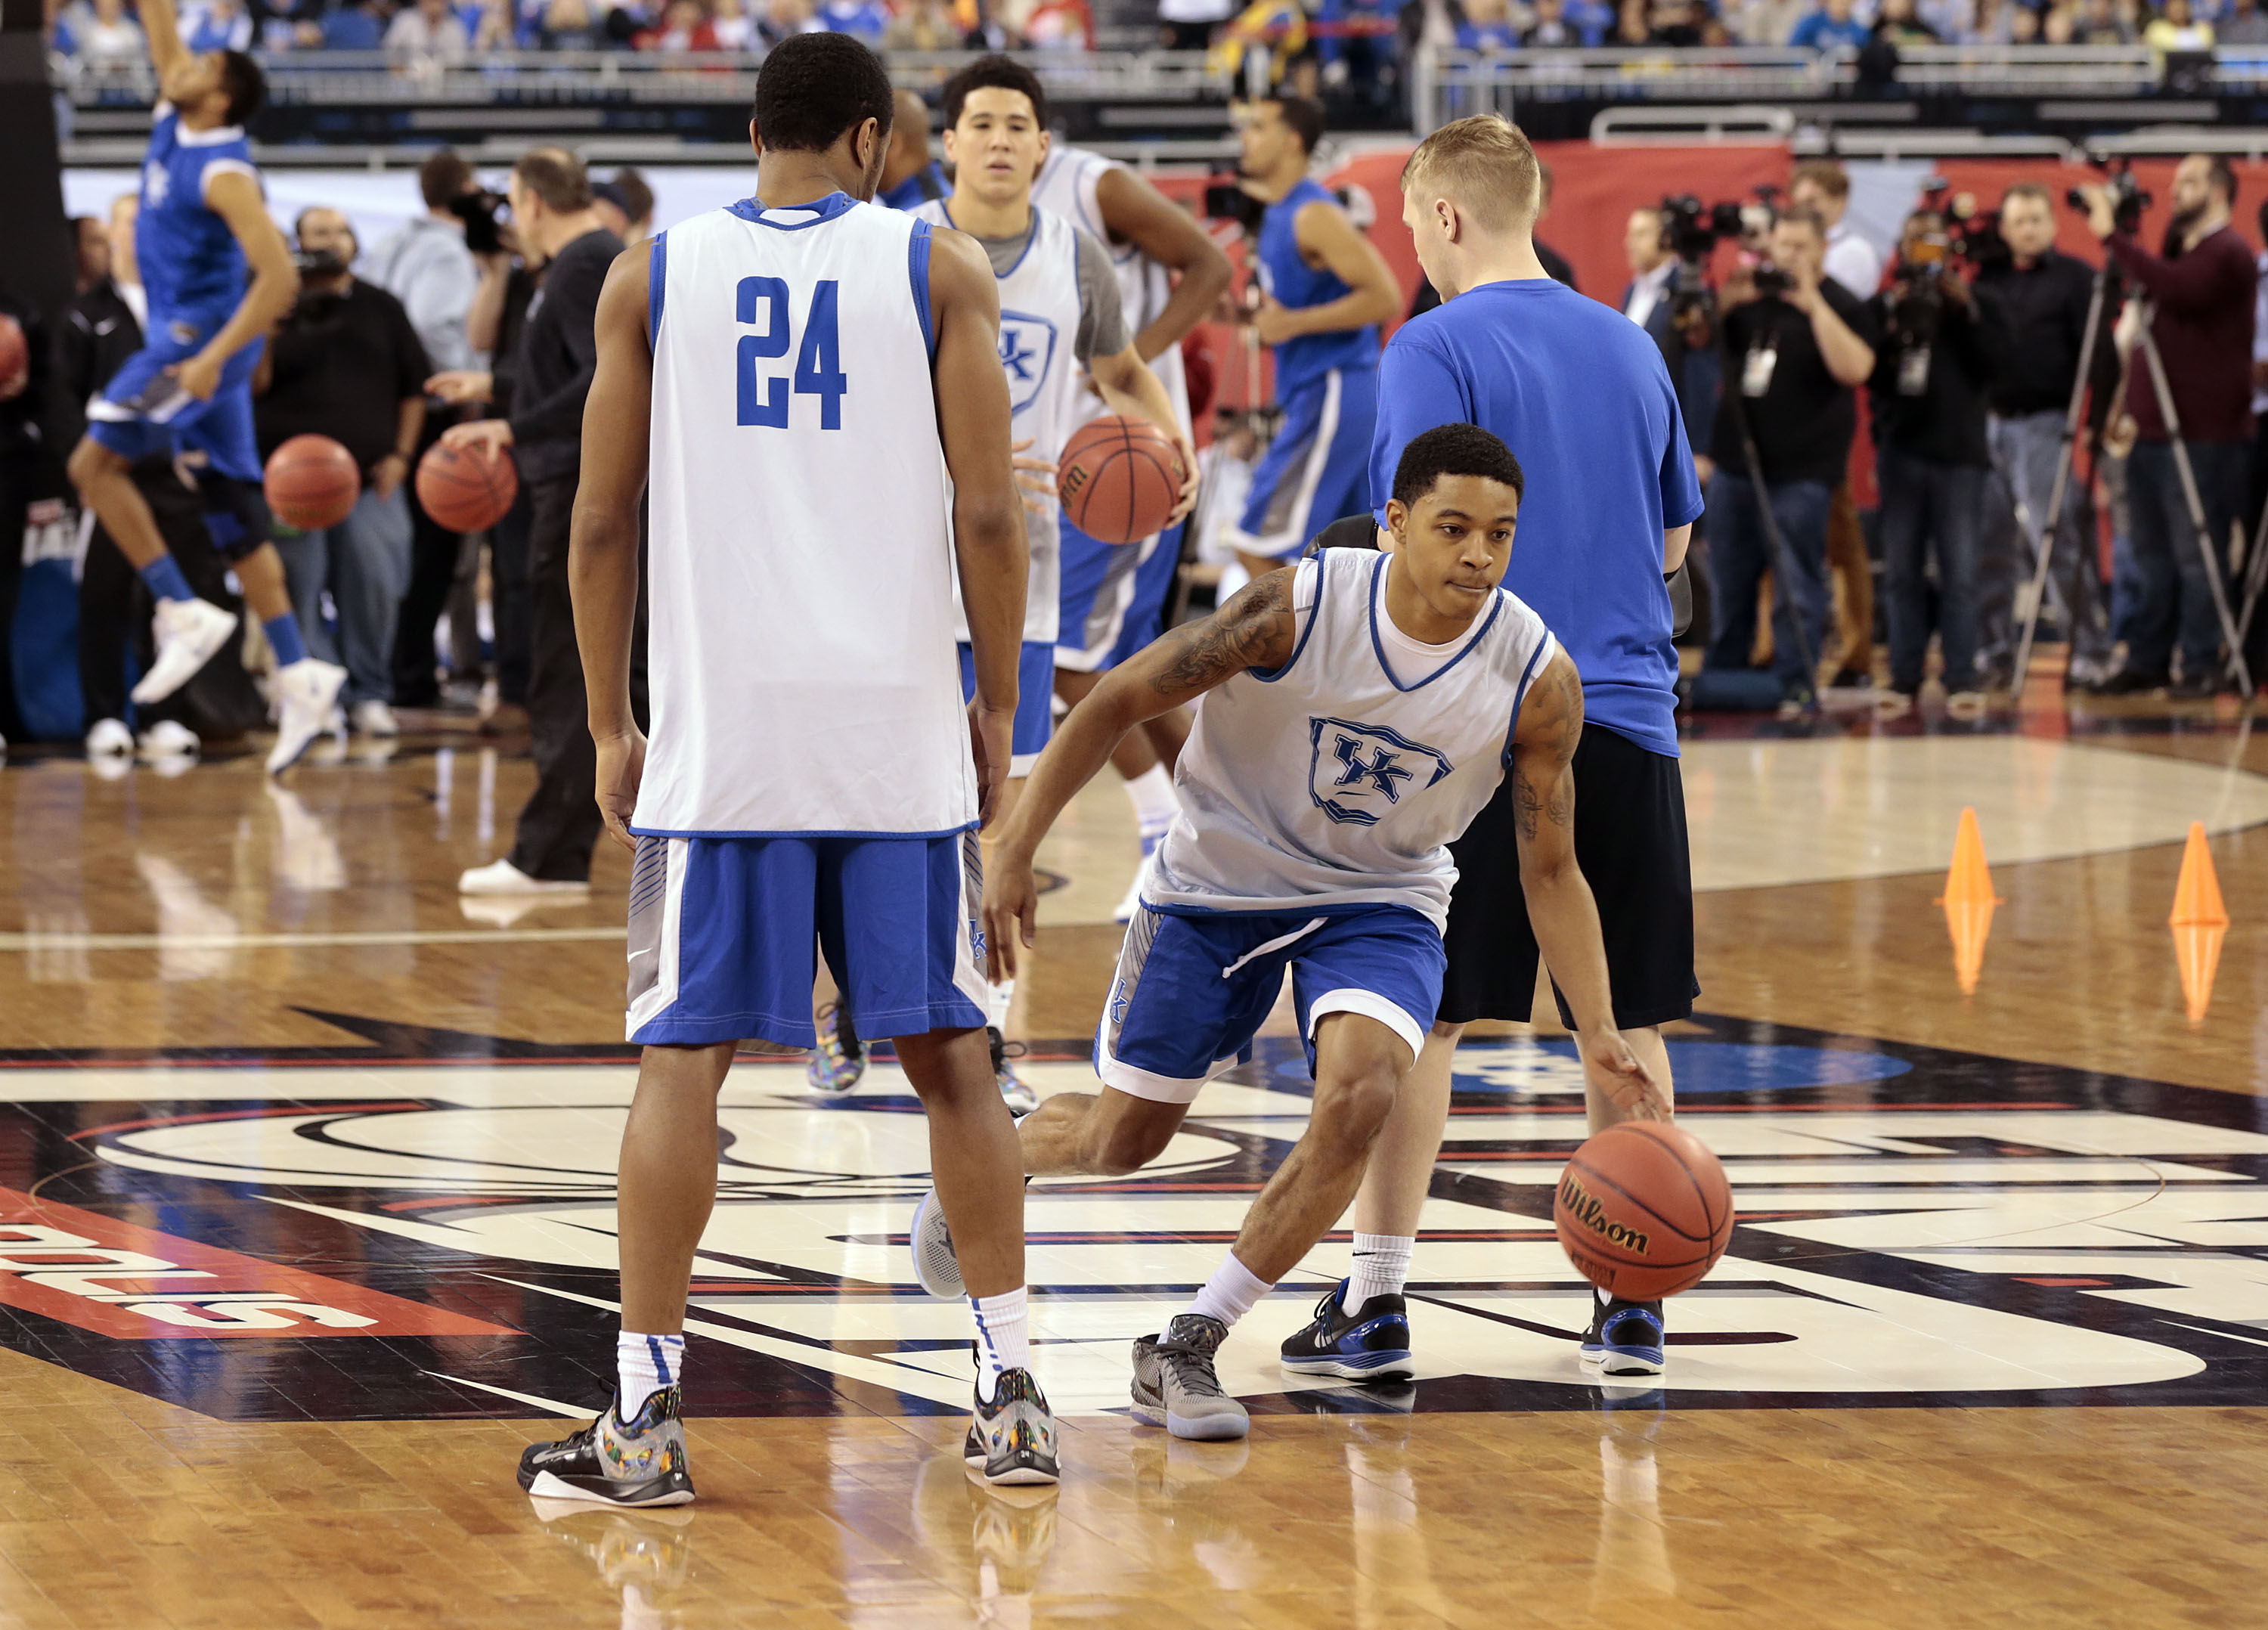 April 3, 2015 - Indianapolis, IN, USA - Kentucky Wildcats guard Devin Booker ran a drill as the University of Kentucky basketball team practiced at Lucas Oil Stadium in Indianapolis, In., Friday, April 03, 2015. UK plays Wisconsin Saturday night in the National semifinals. Photo by Charles Bertram   Staff. (Credit Image: © Lexington Herald-Leader/ZUMA Wire)